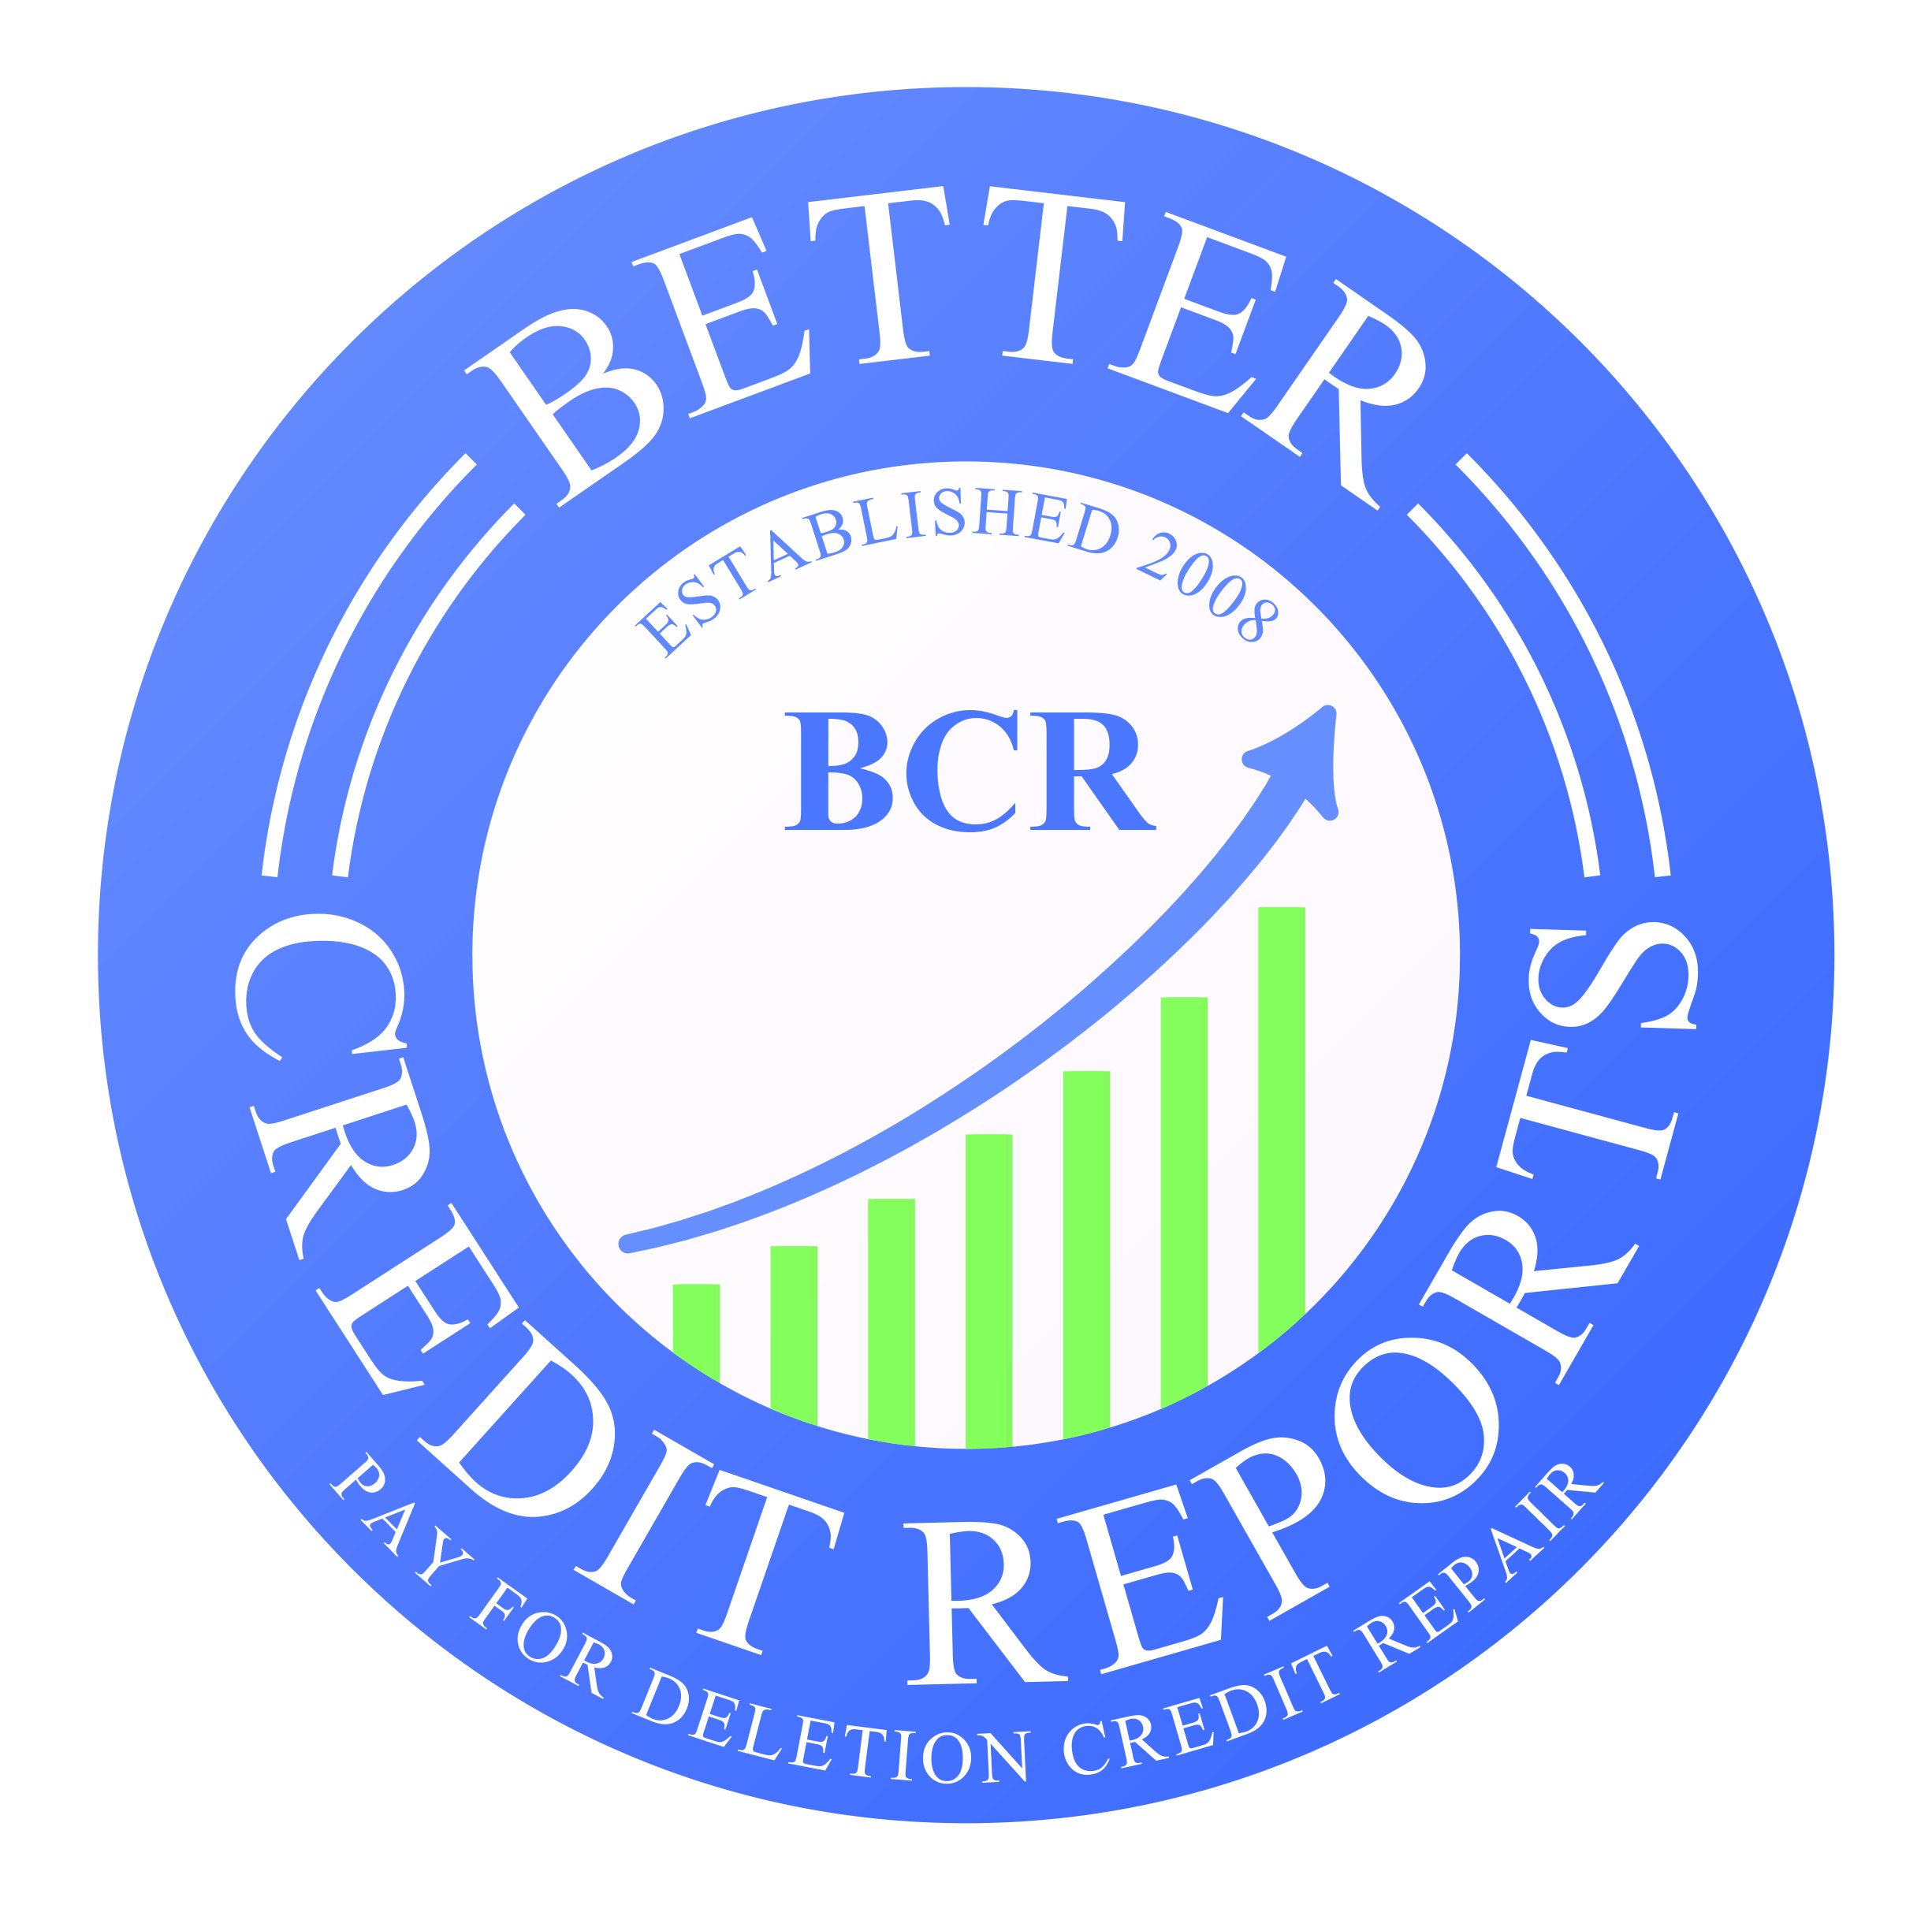 Pay per performance credit repair